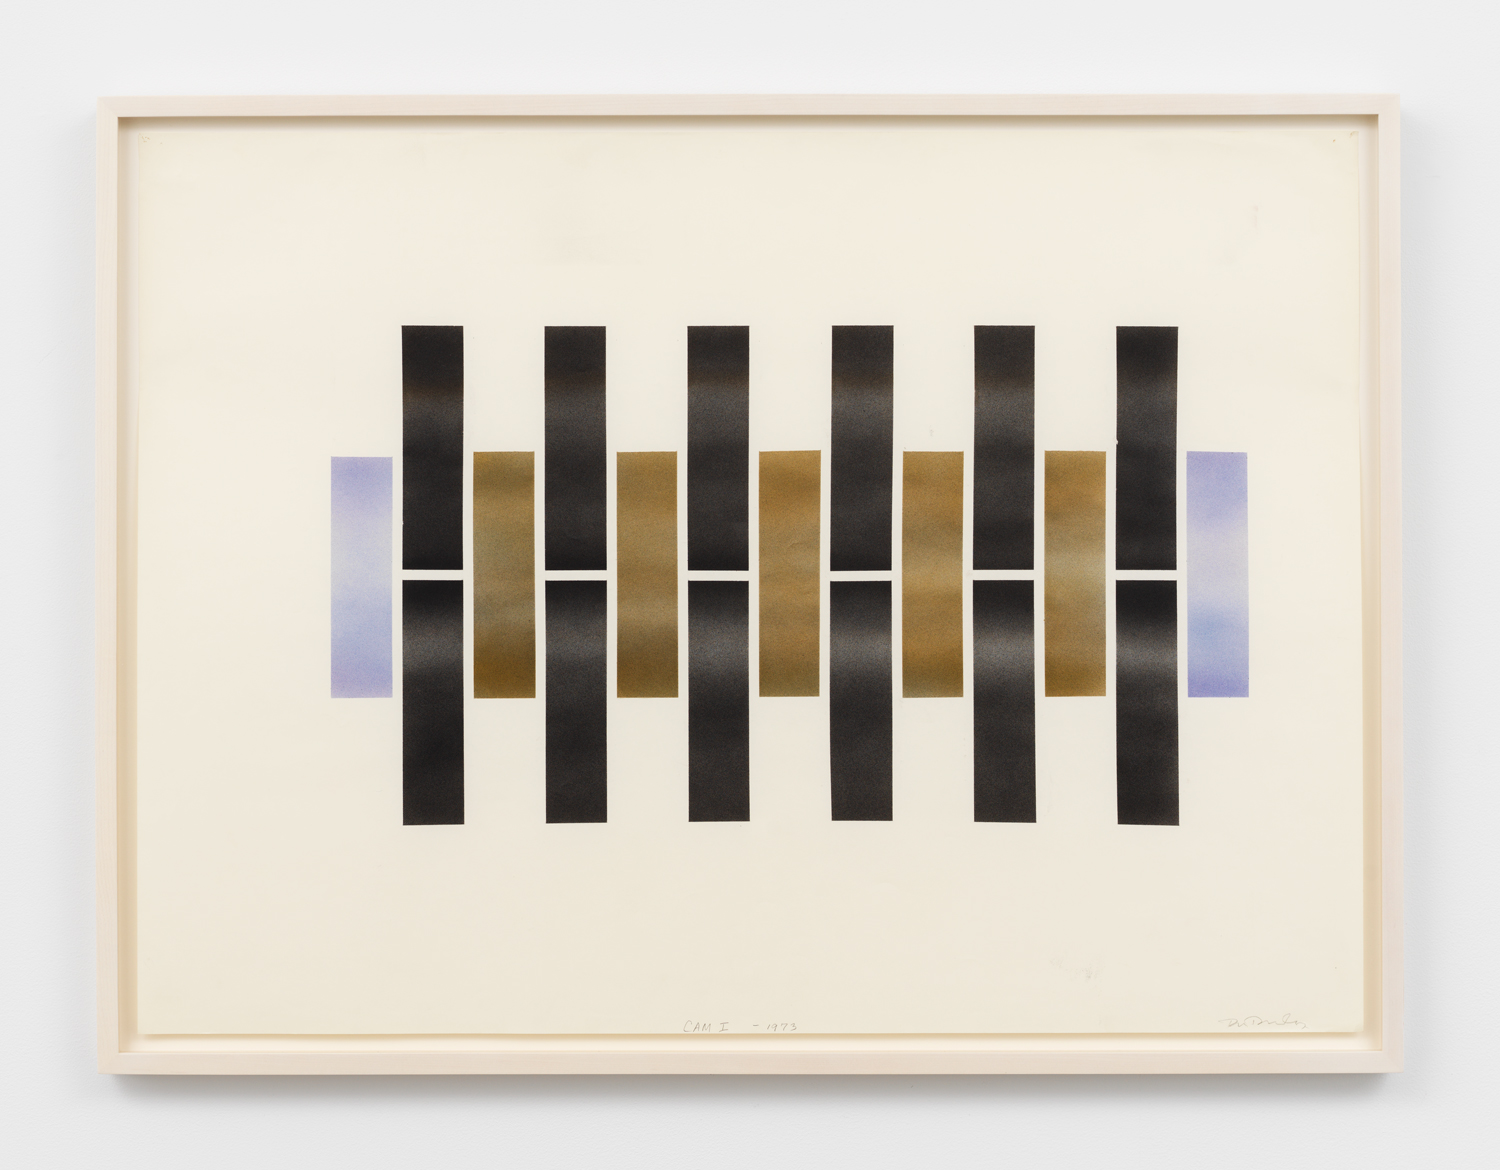 Don Dudley, Cam I, 1973, airbrush ink on paper, 23h x 29w in.